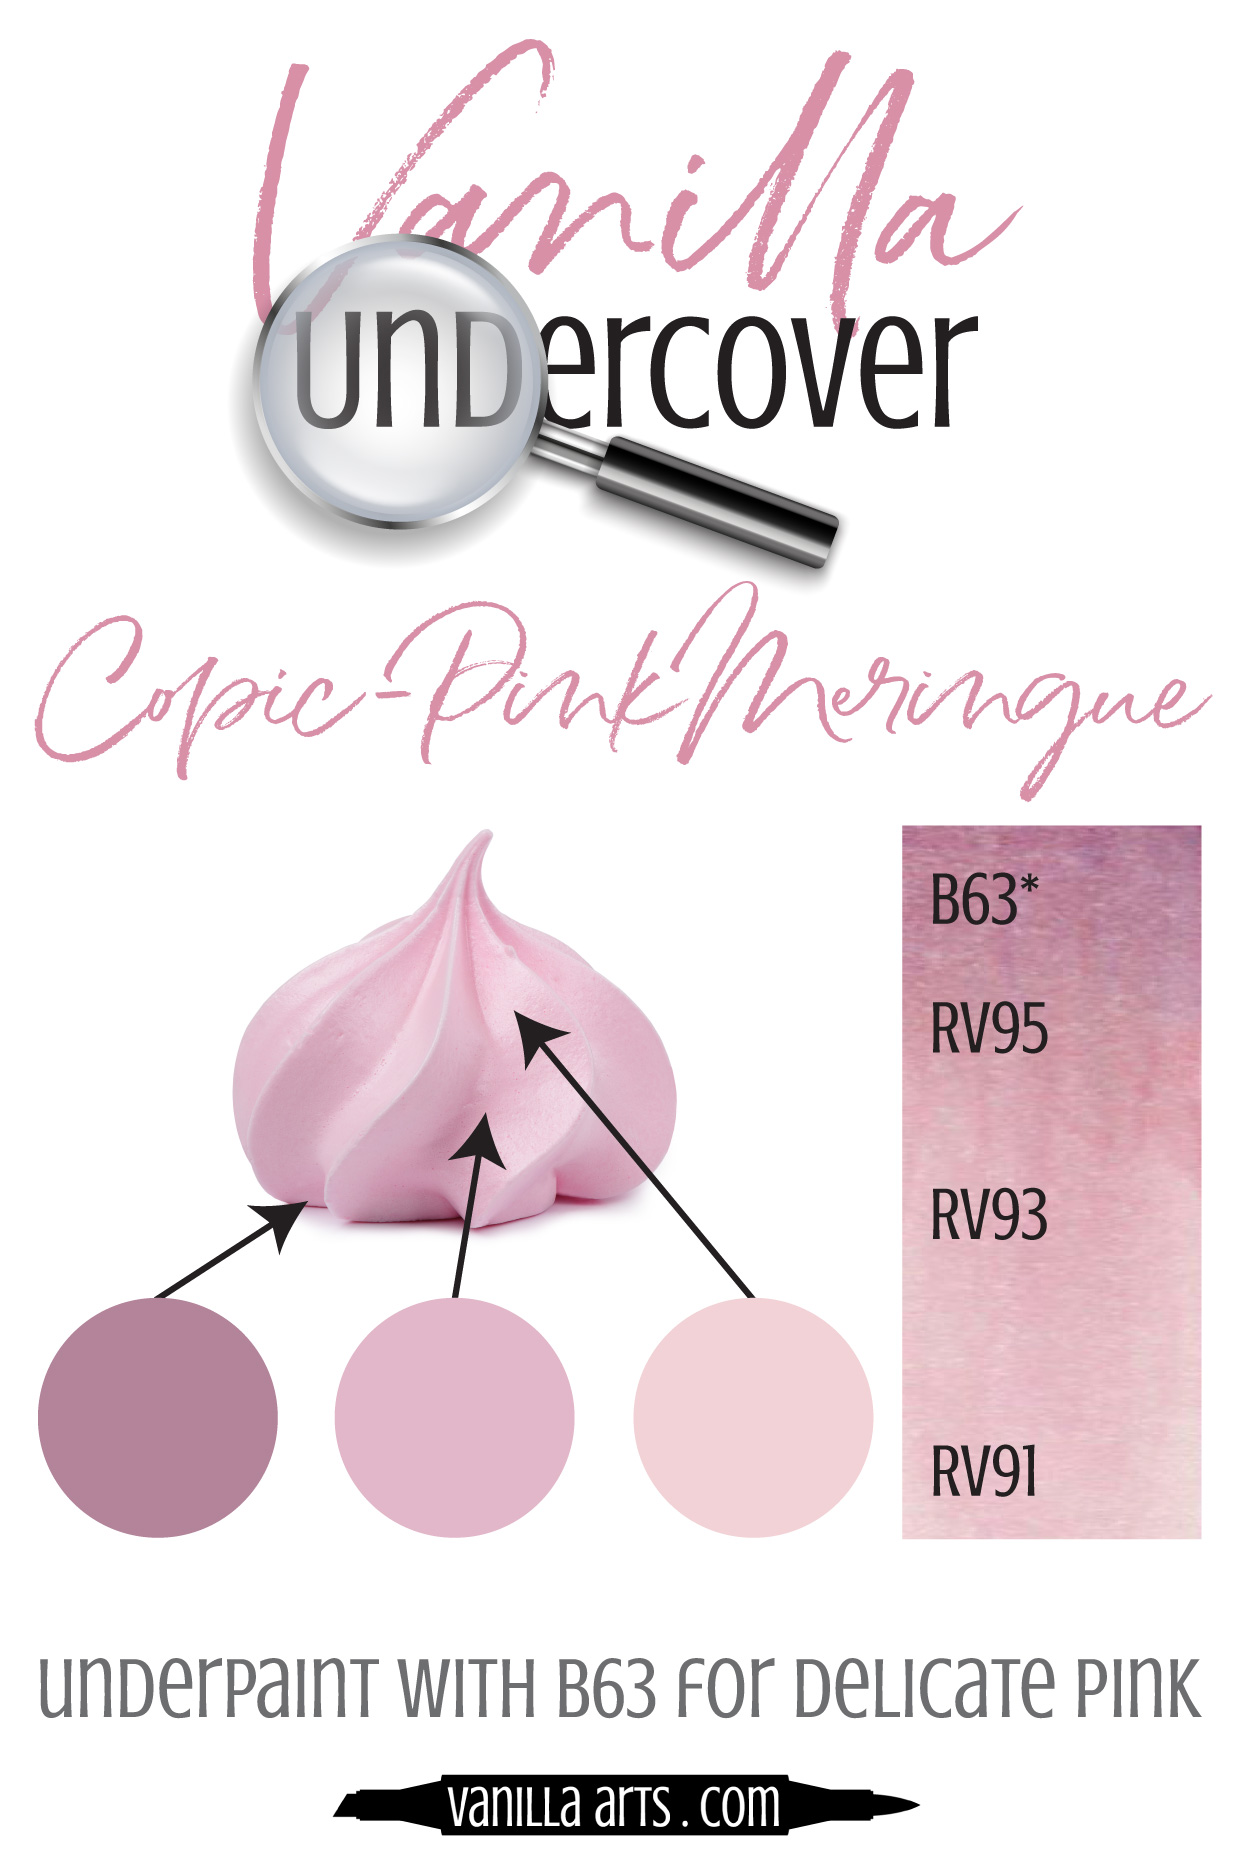 Add dimension and realism by underpainting with Copic Markers! Use B63 underneath your RV's (Red-Violet) blending combination to capture the look of light, frothy Pink Merengue. |  VanillaArts.com  | #copicmarker #realisticcoloring #underpainting